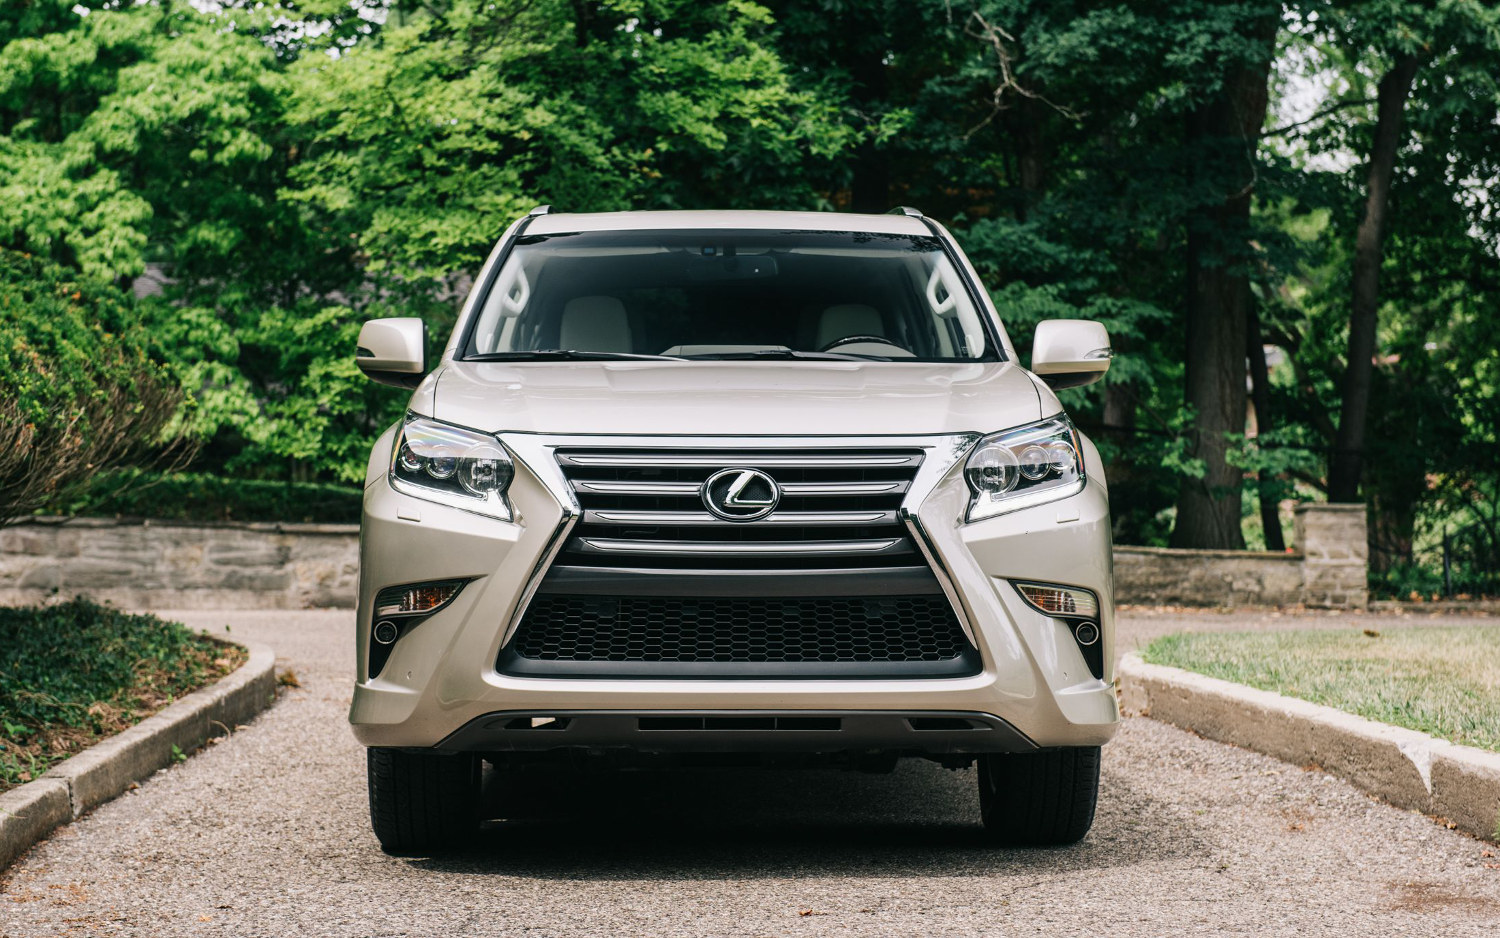 Comparison - Lexus GX 460 Luxury 2018 - vs - Lexus RX 350 F